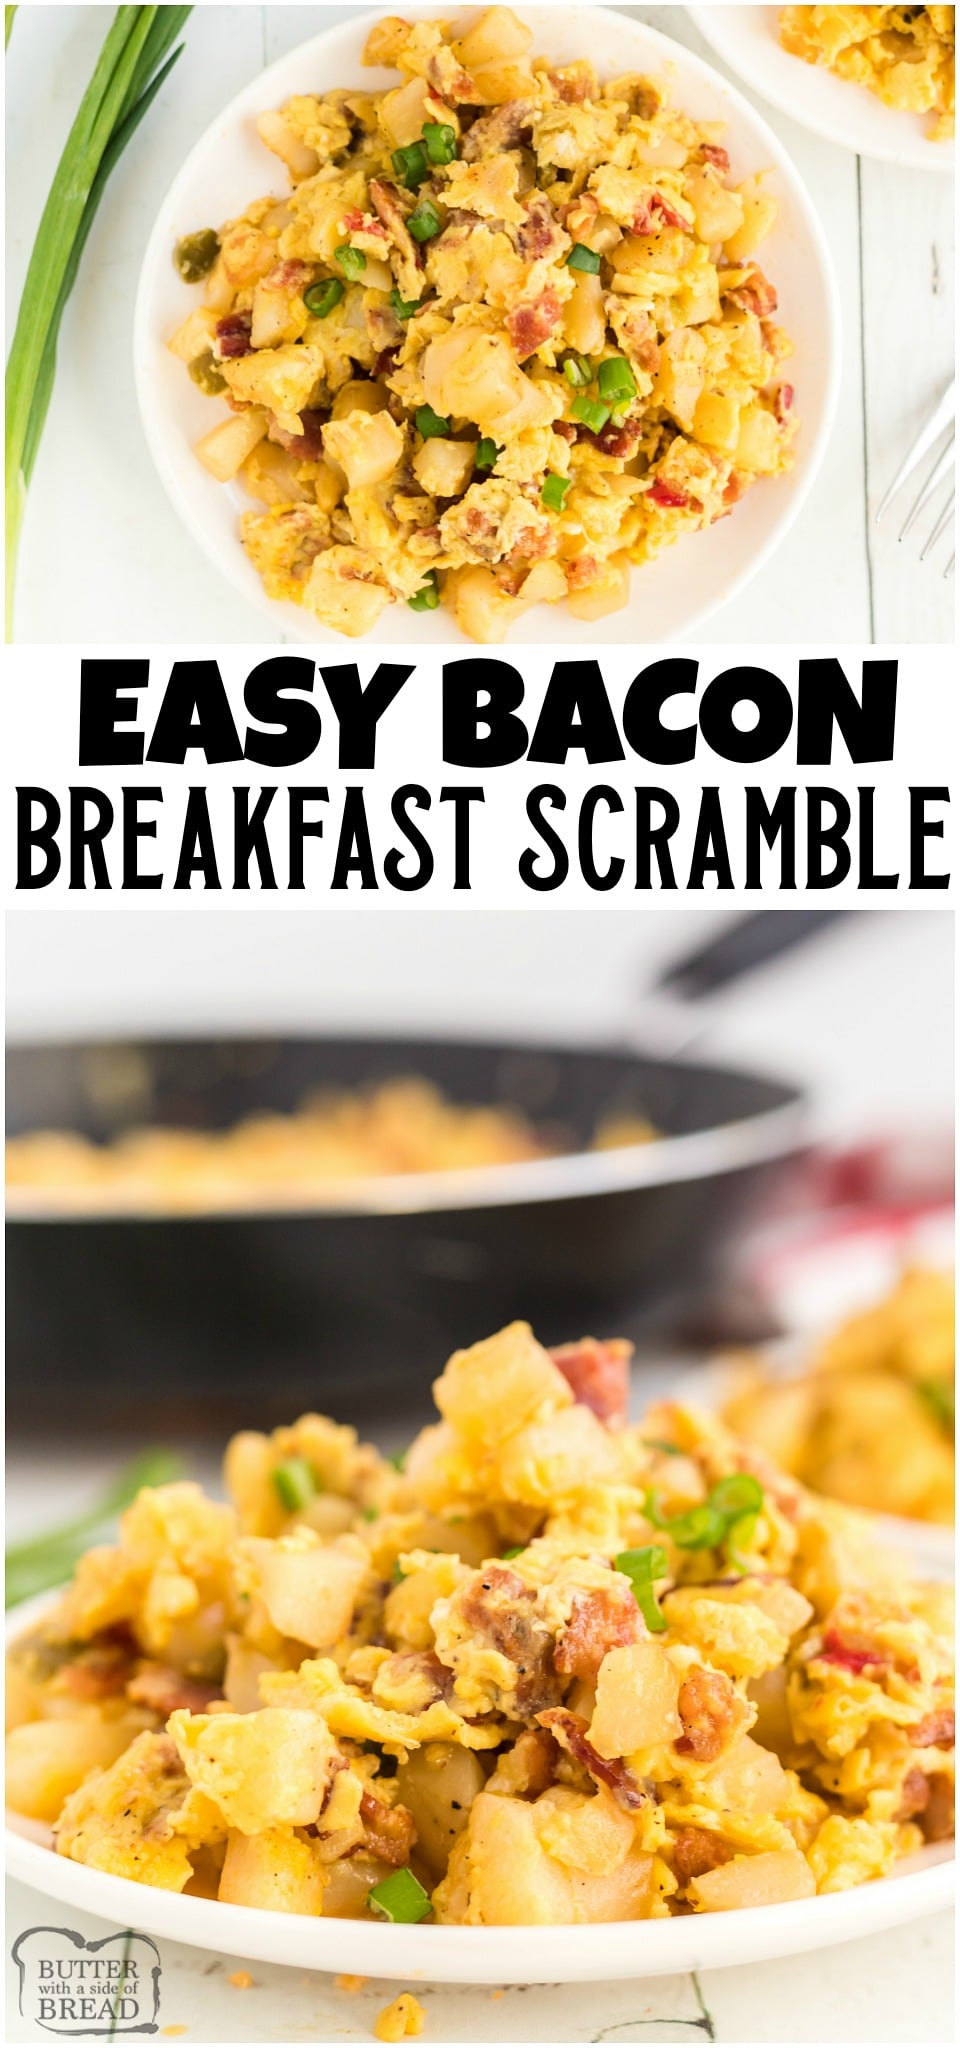 Bacon Breakfast scramble is an easy skillet breakfast casserole recipe everyone enjoys. Protein packed with eggs, bacon and hash brown potatoes, this scramble comes together fast and can feed a crowd!